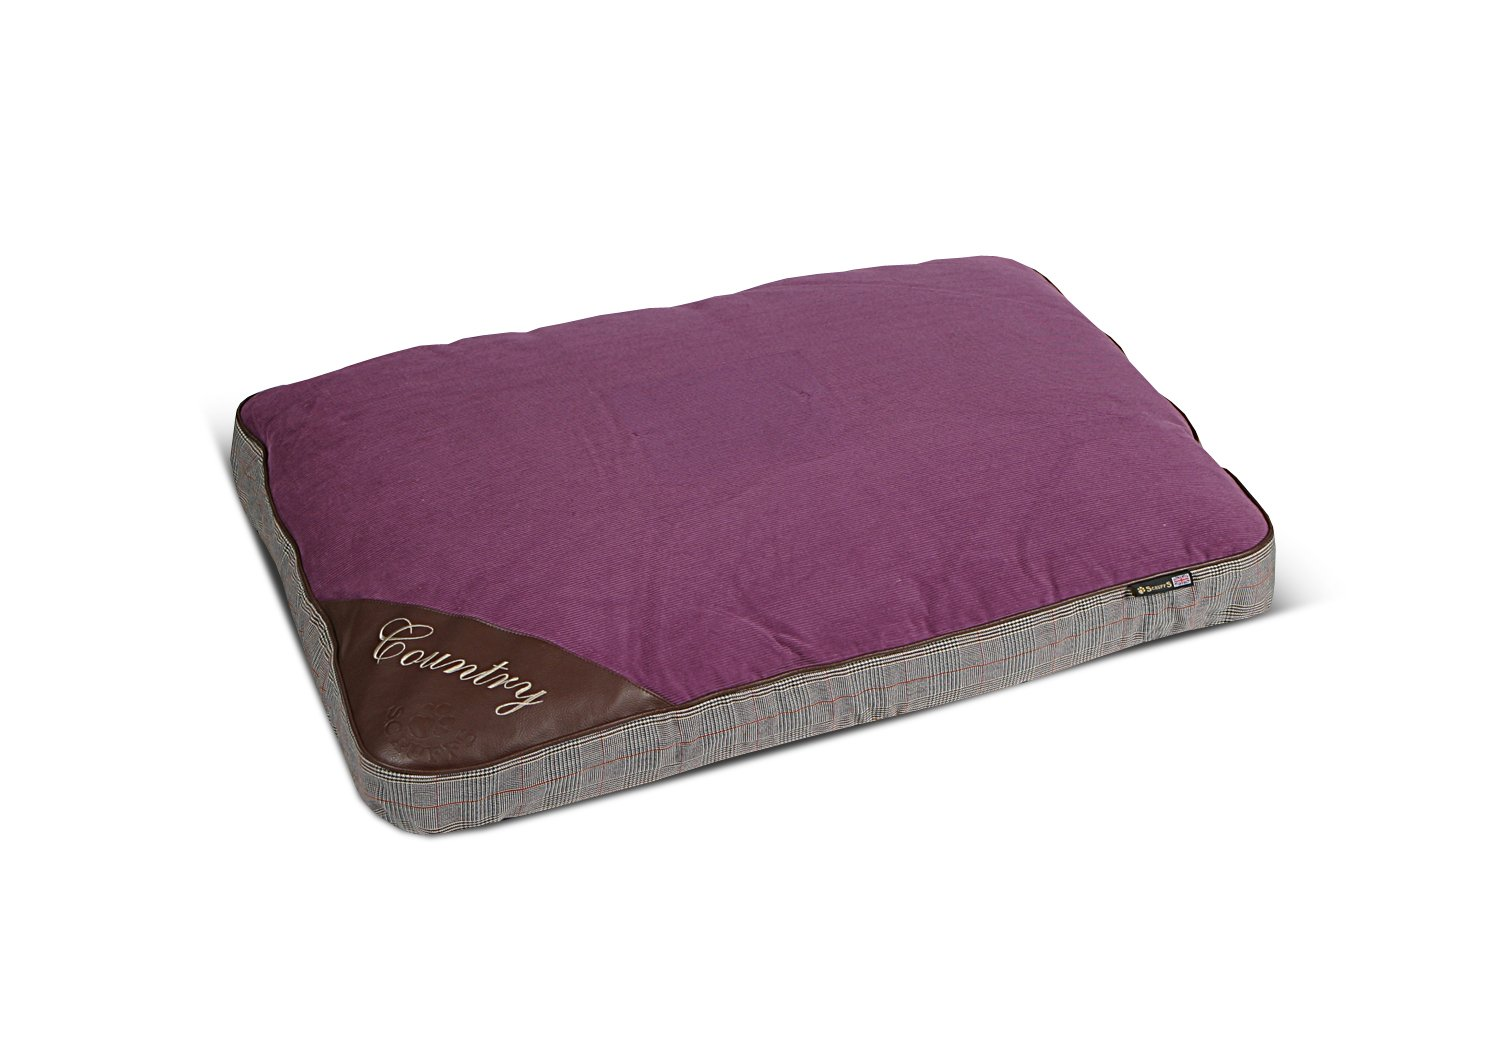 Scruffs Country Duvet for Pets, Medium, Mulberry